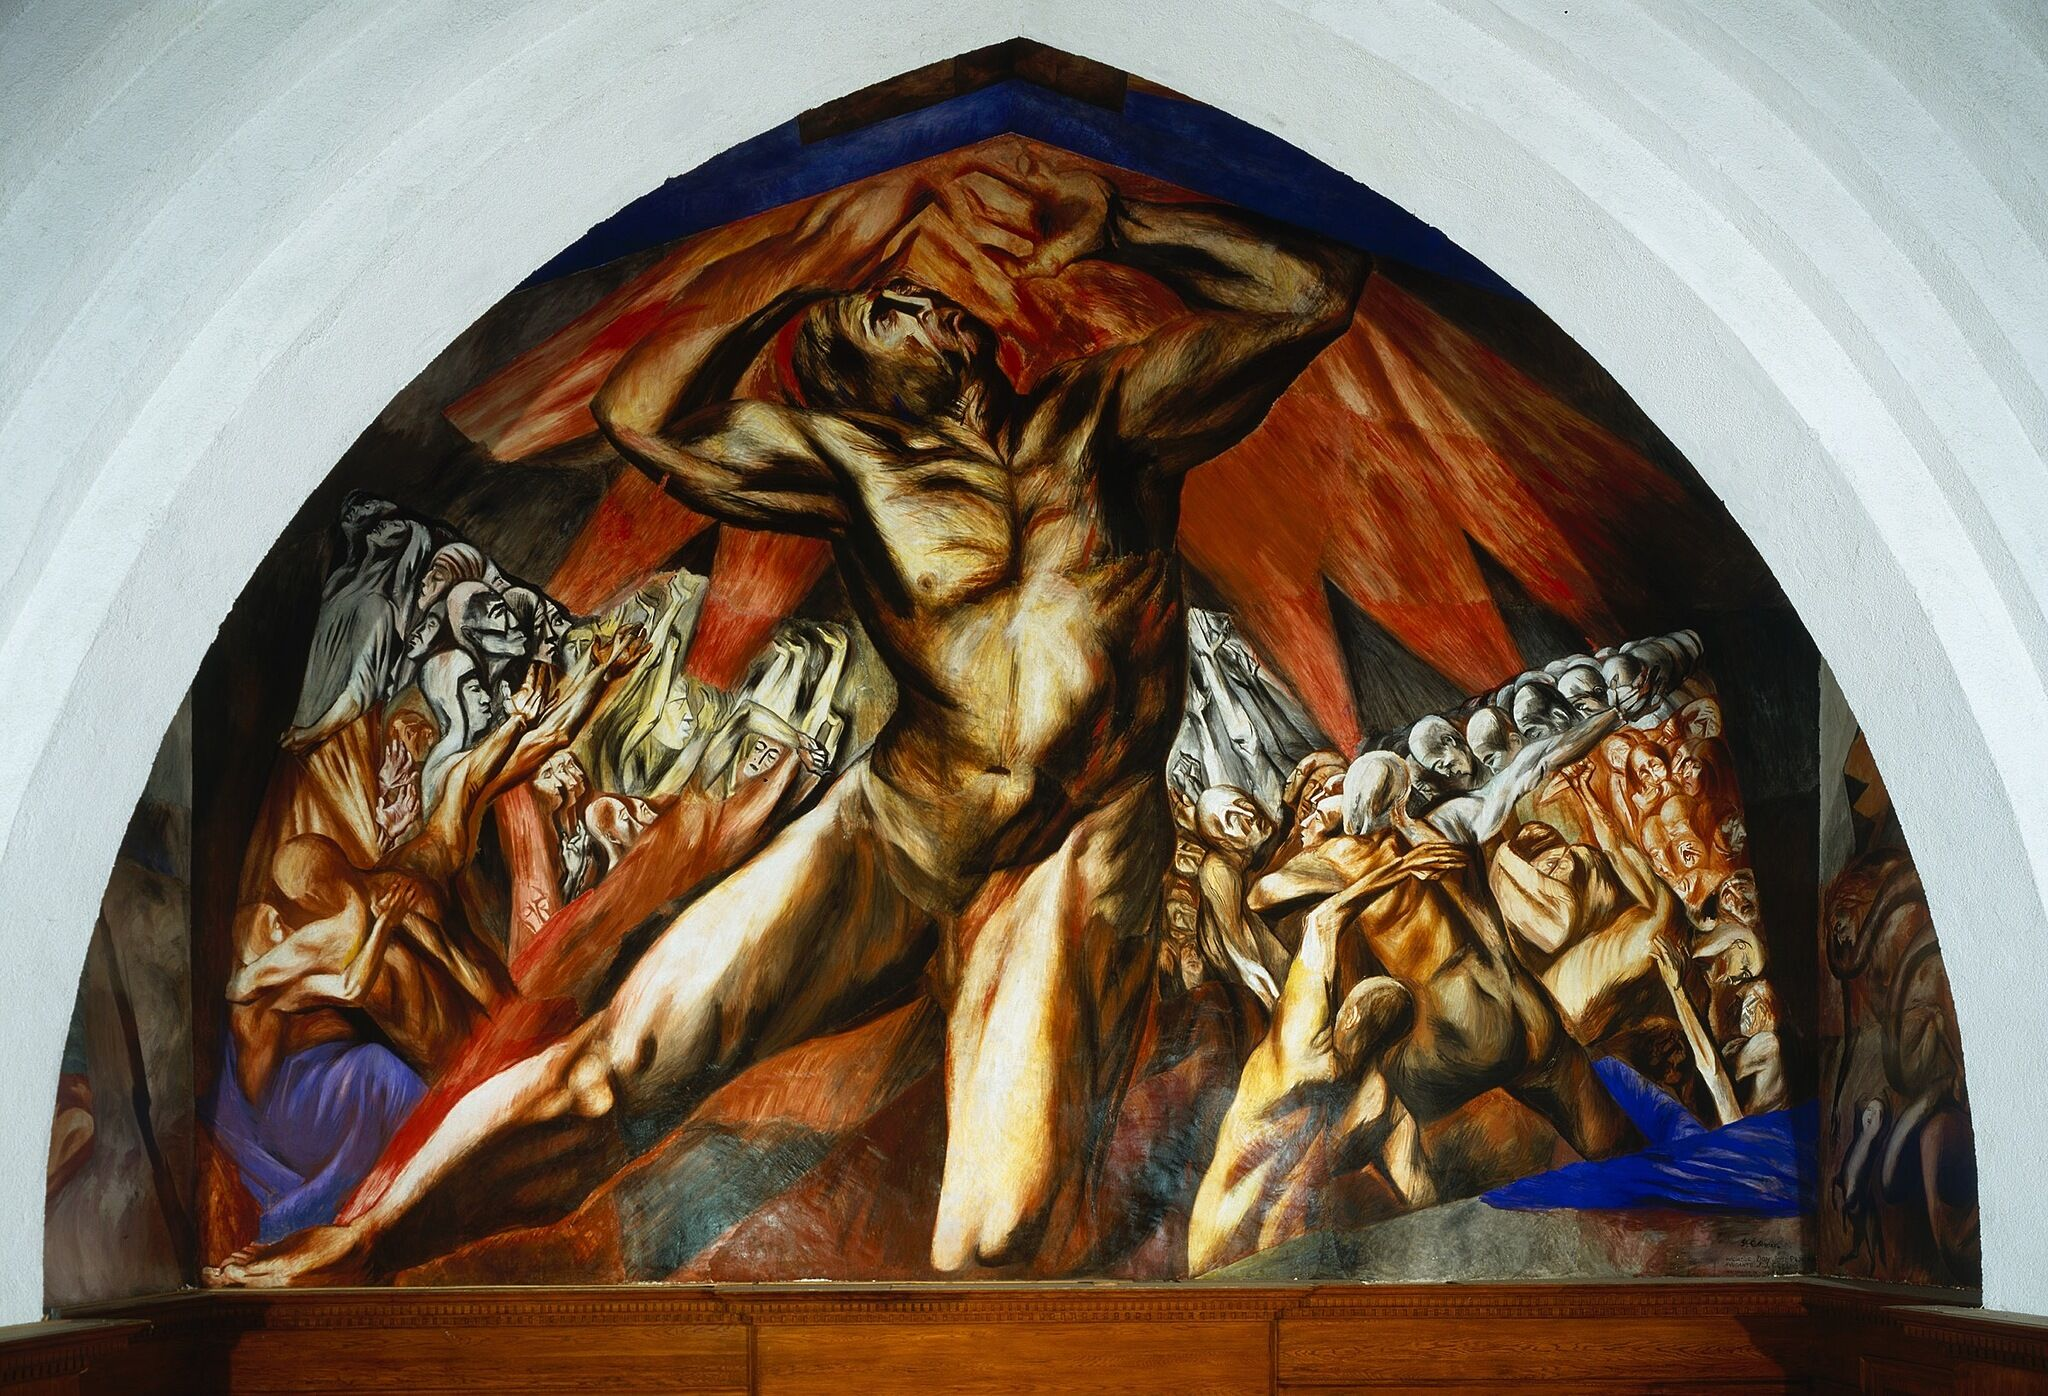 A photo of a mural depicting a tortured-looking man.